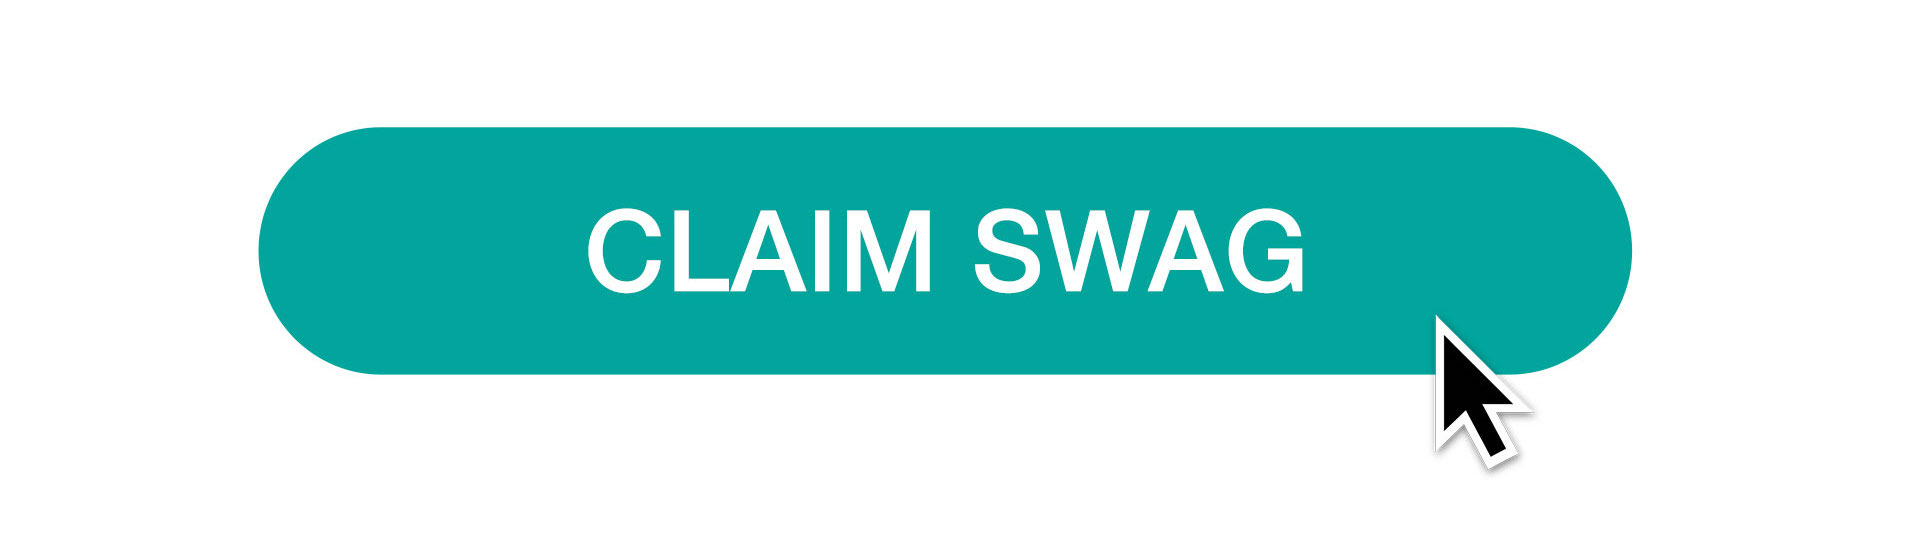 Consensus-Swag-Bag-Media-Release-Images---Claim-Swag-Button-v1